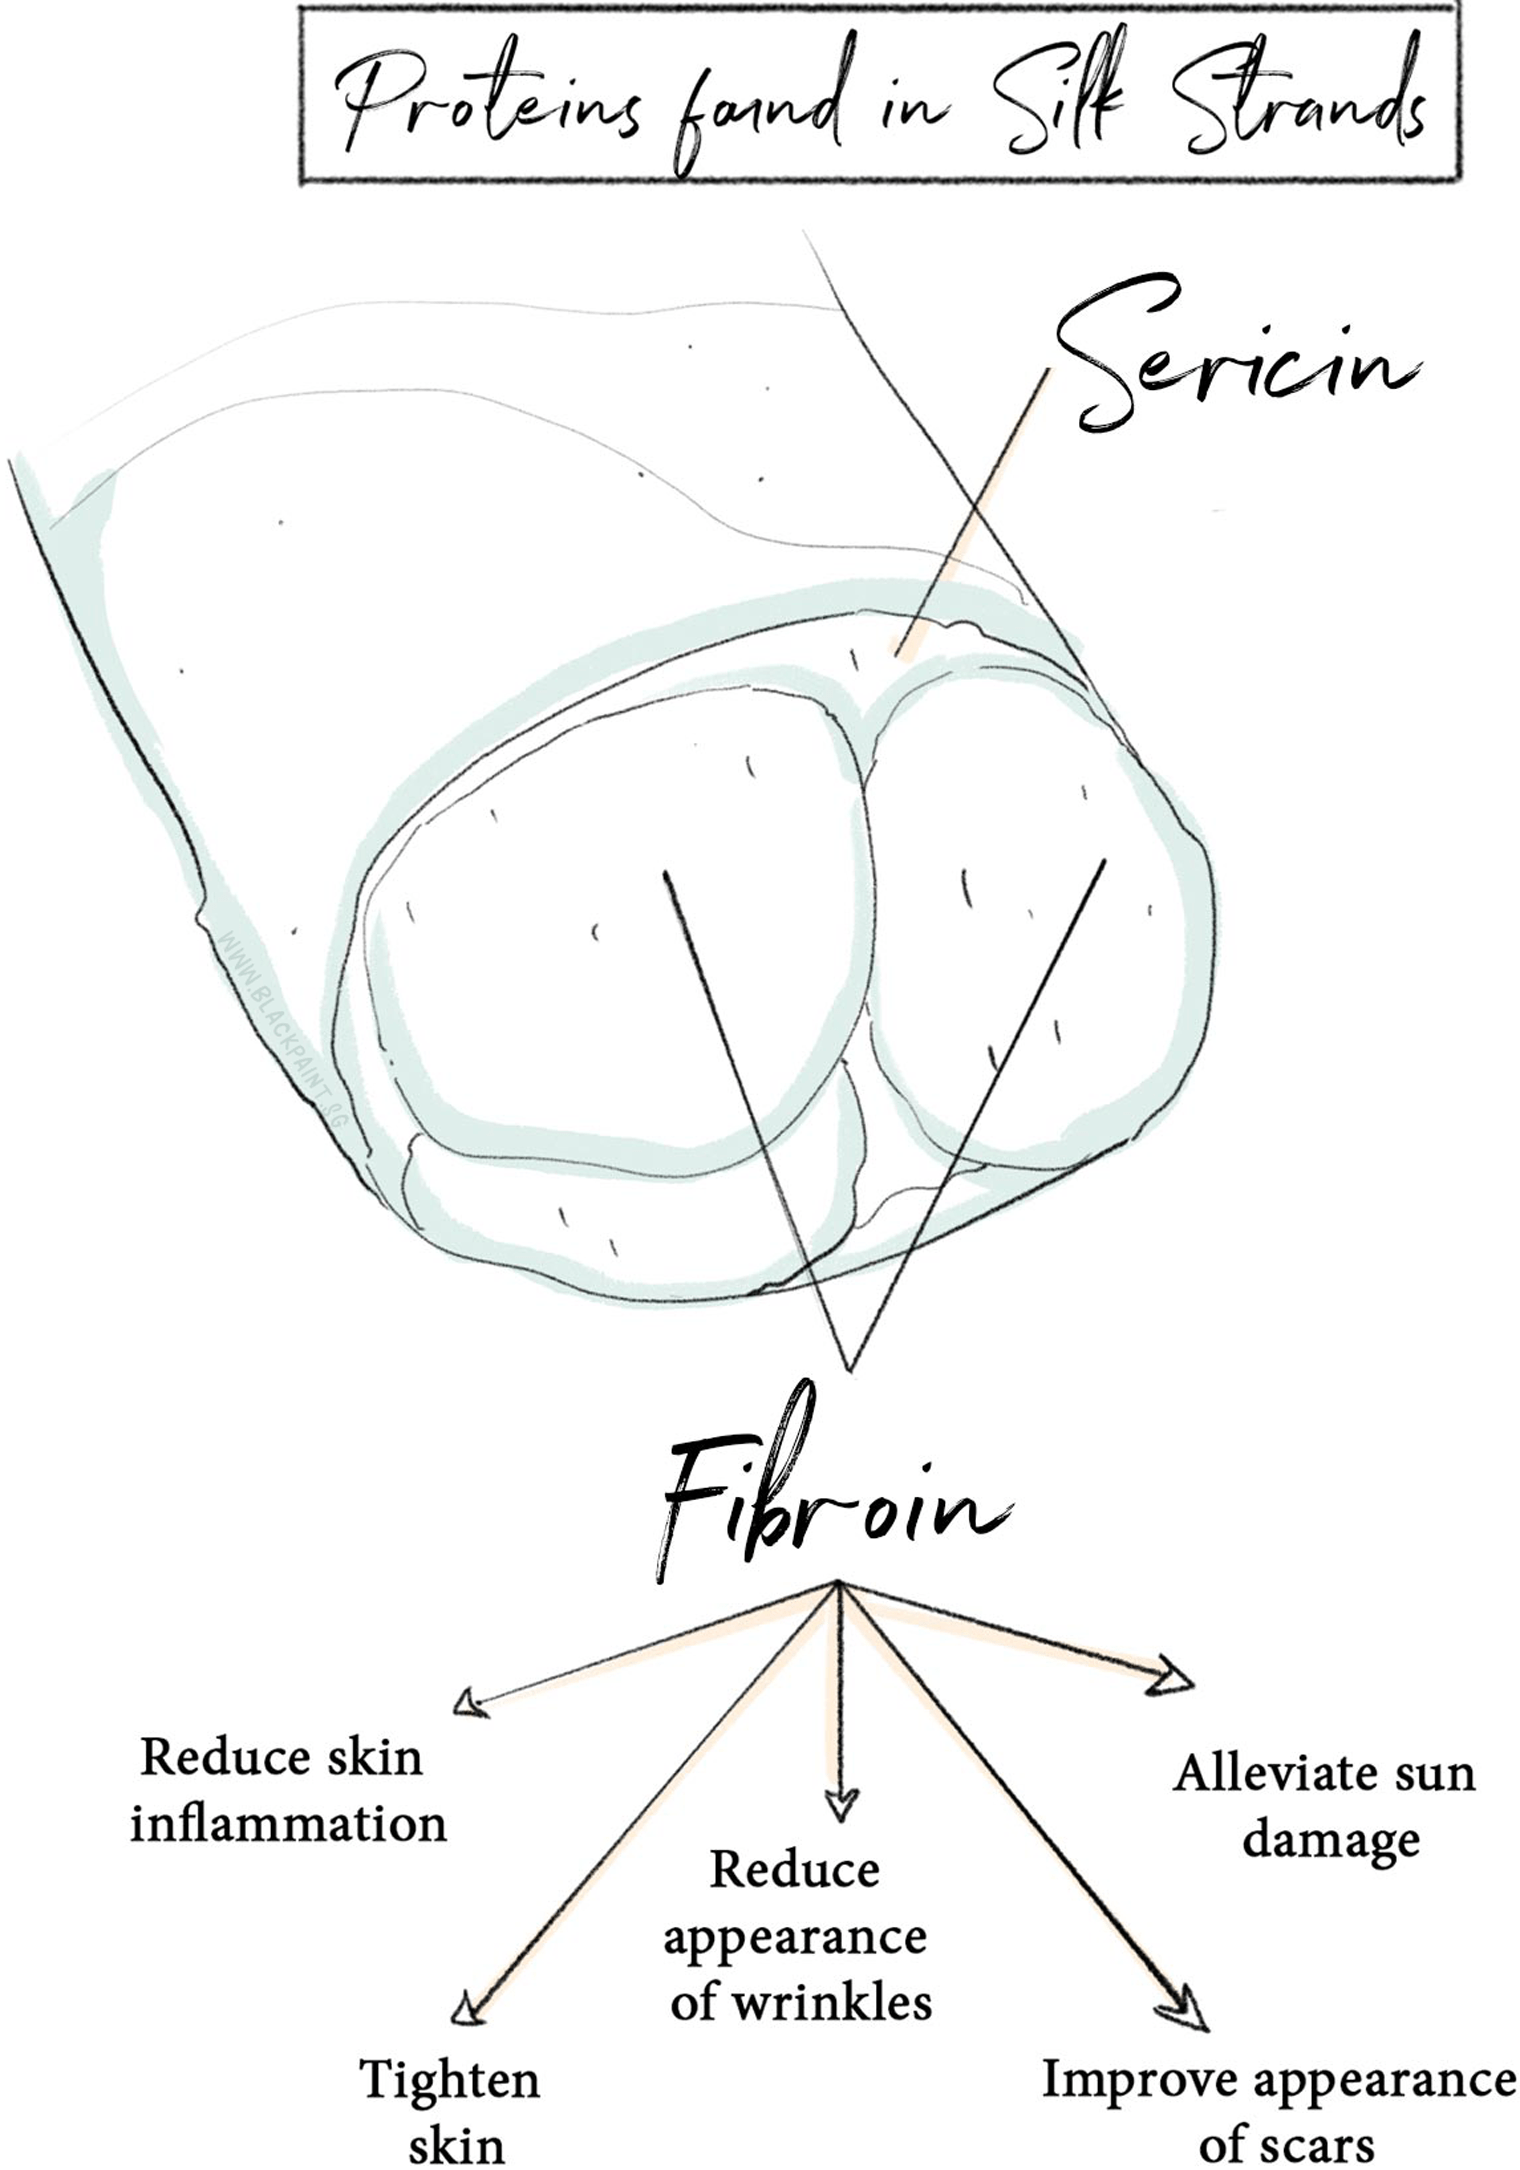 hight resolution of sericin and fibroin are the two key proteins found in silk strands